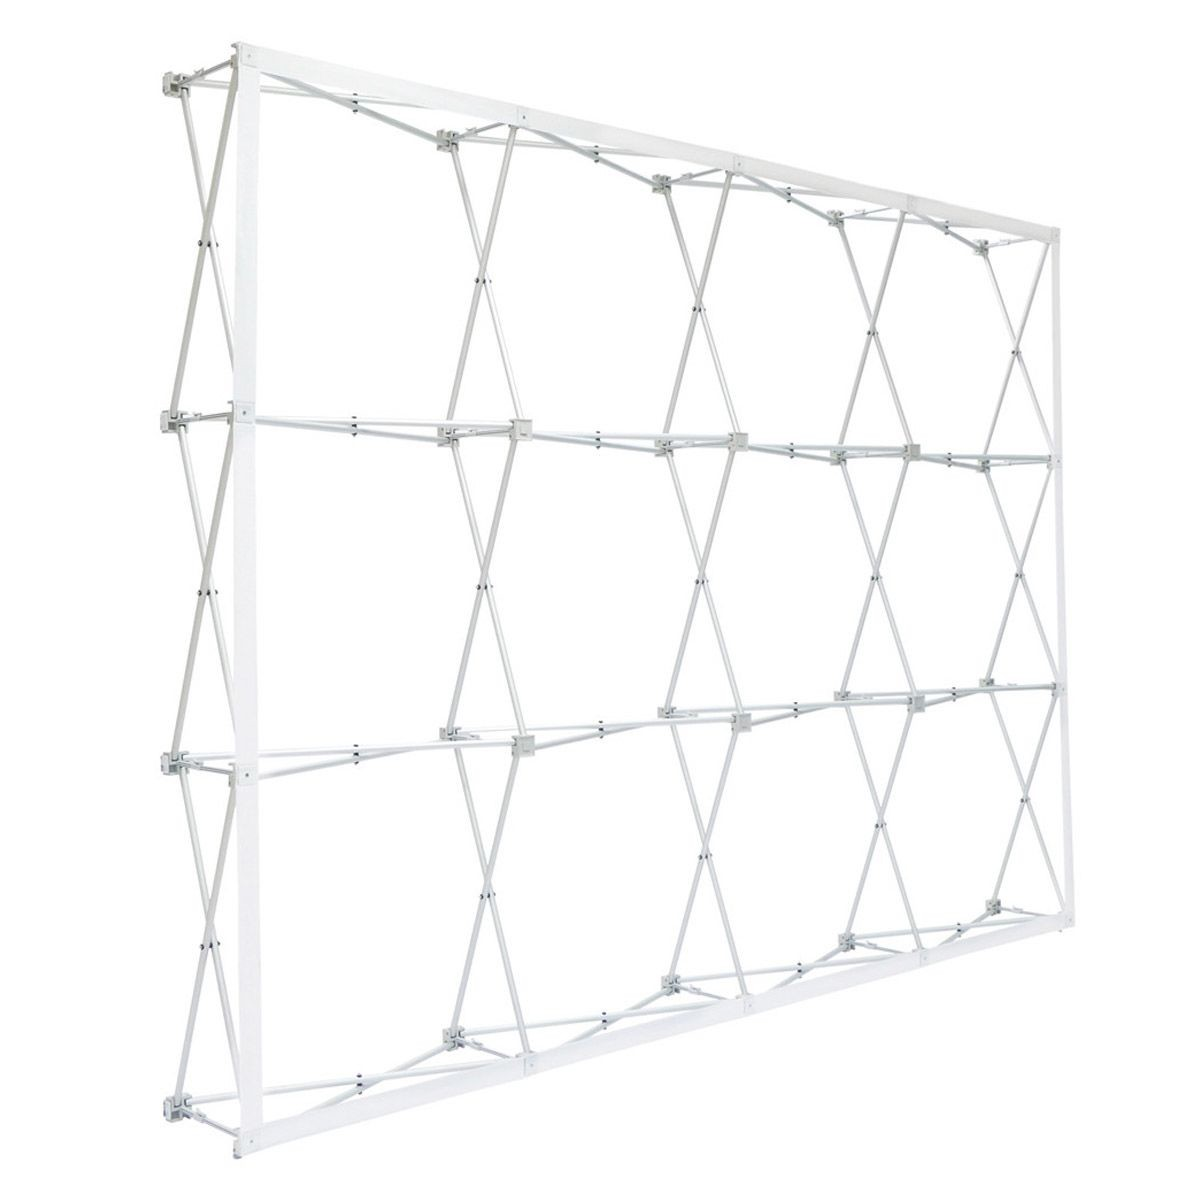 10 Foot Pop Up Displays Frame